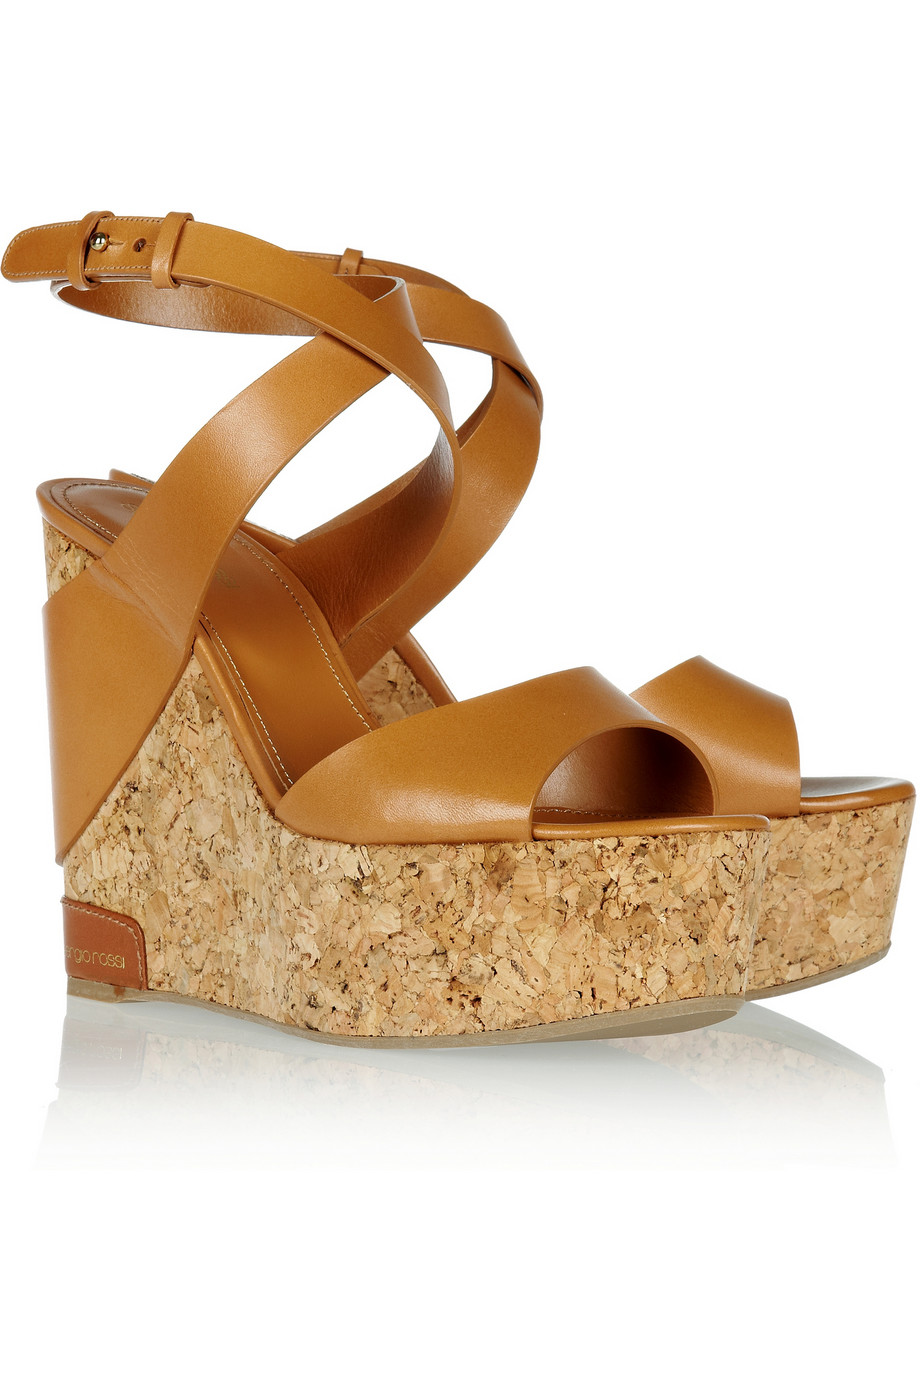 923746c6c11 Lyst - Sergio Rossi Leather and Cork Wedge Sandals in Brown